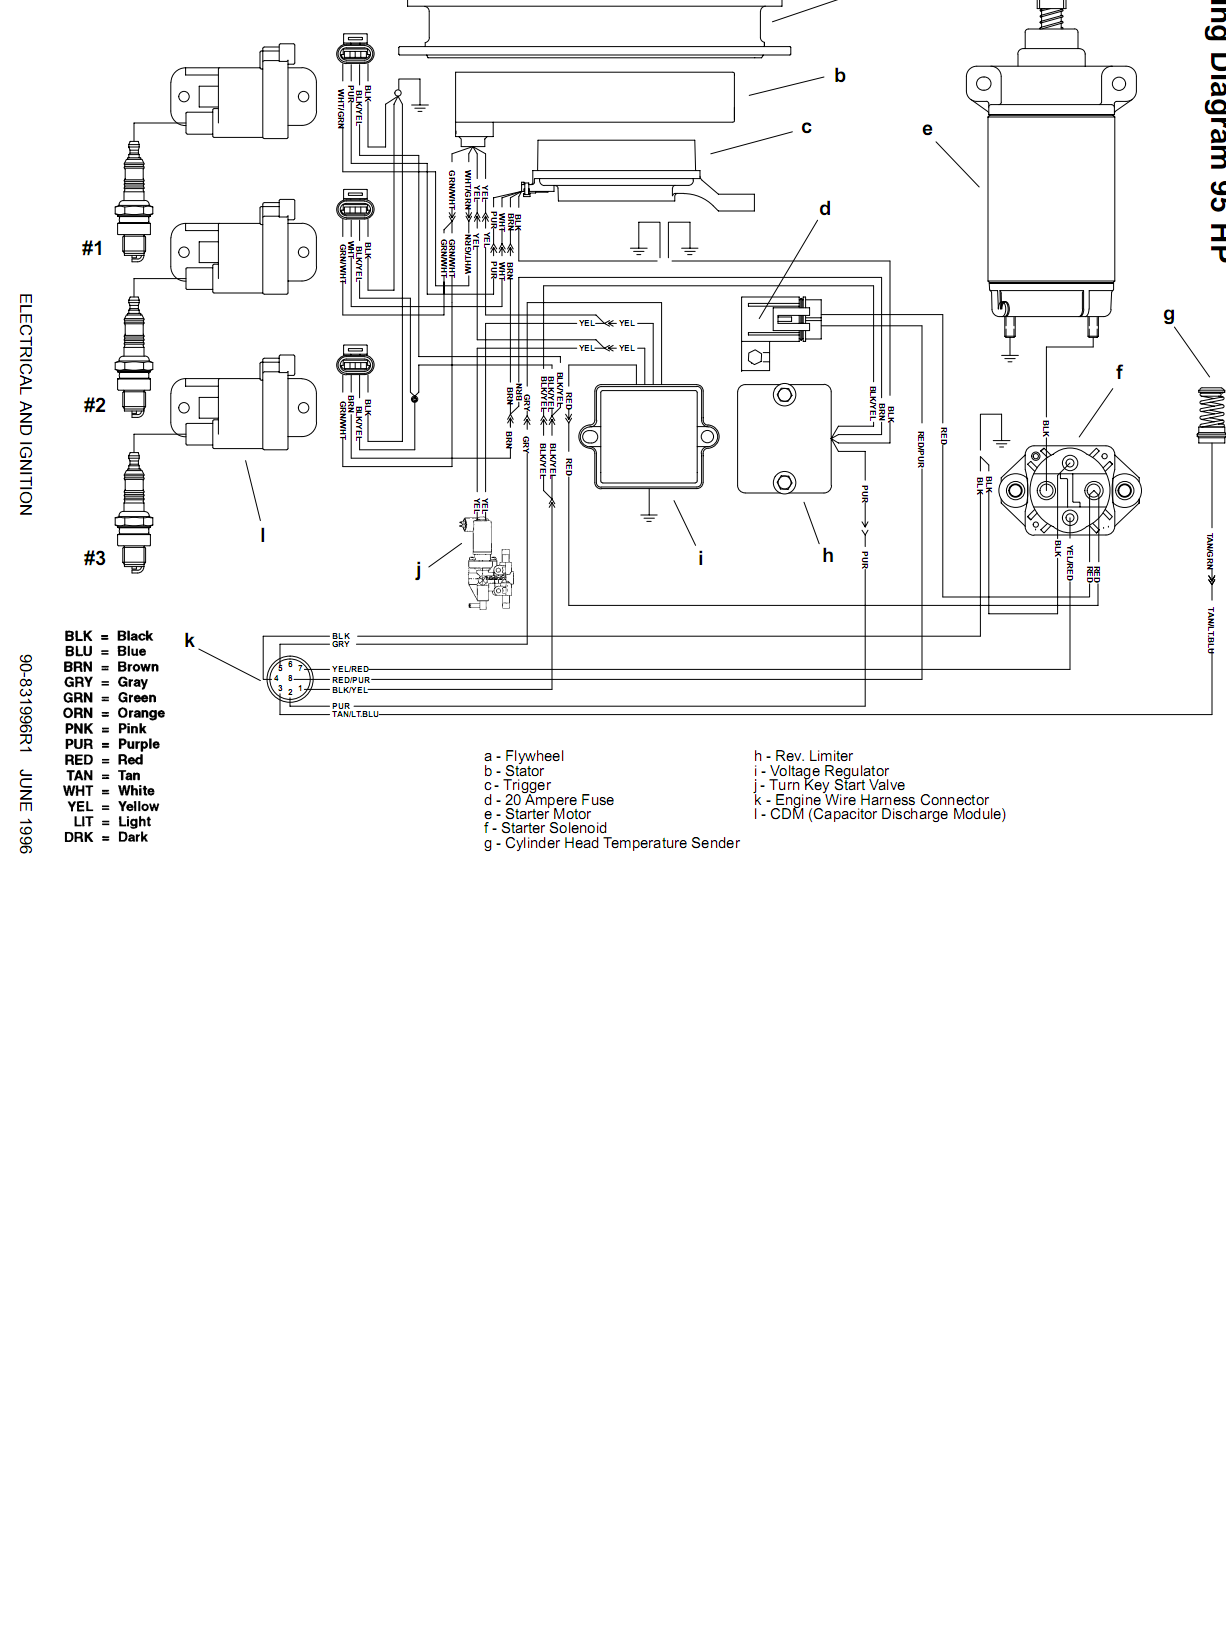 sea ignition wiring diagram get free image about wiring diagram